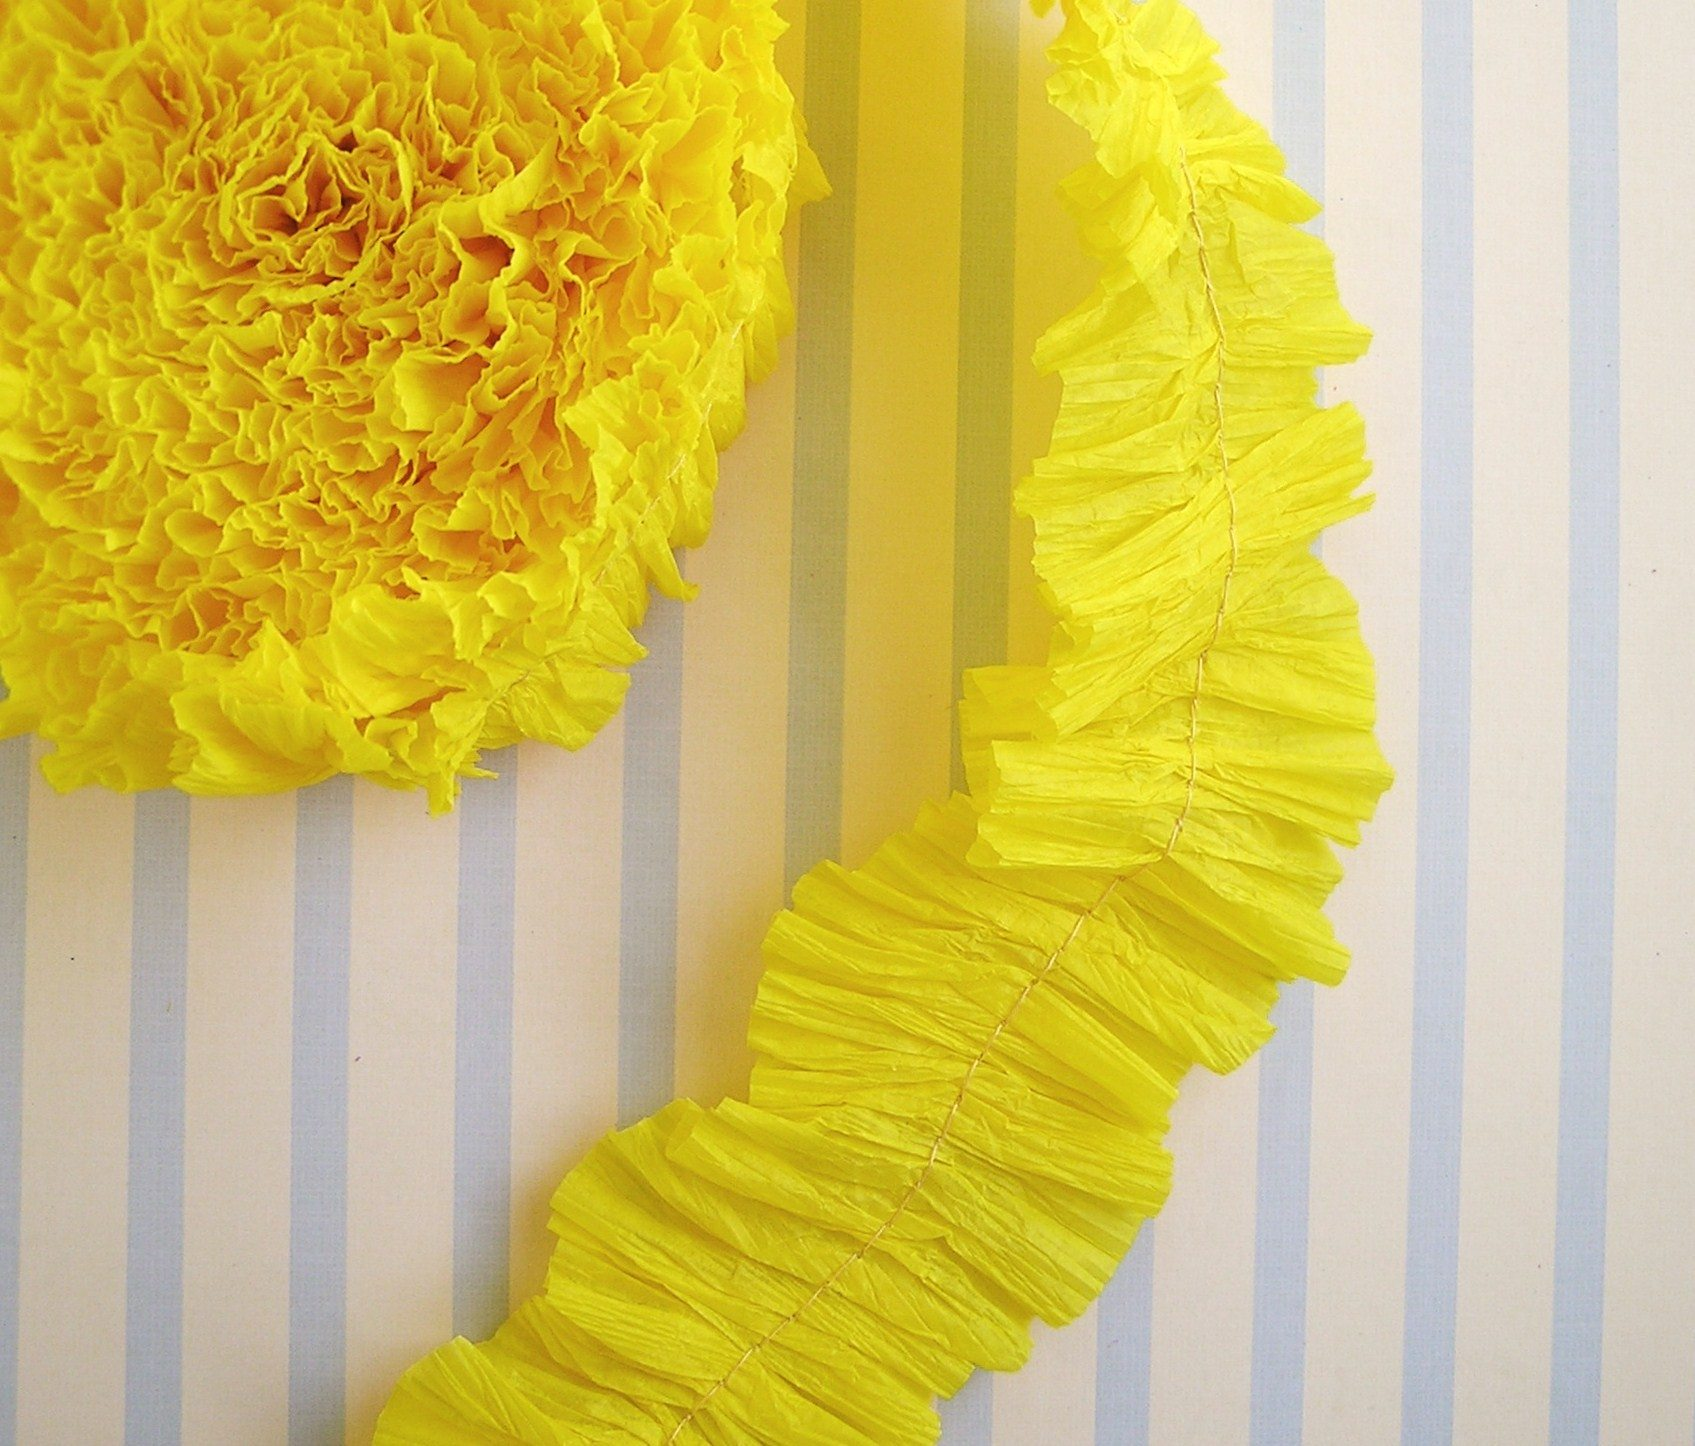 crepe paper The crafting experts at hgtvcom share easy step-by-step instructions on how to make realistic flowers using crepe paper.